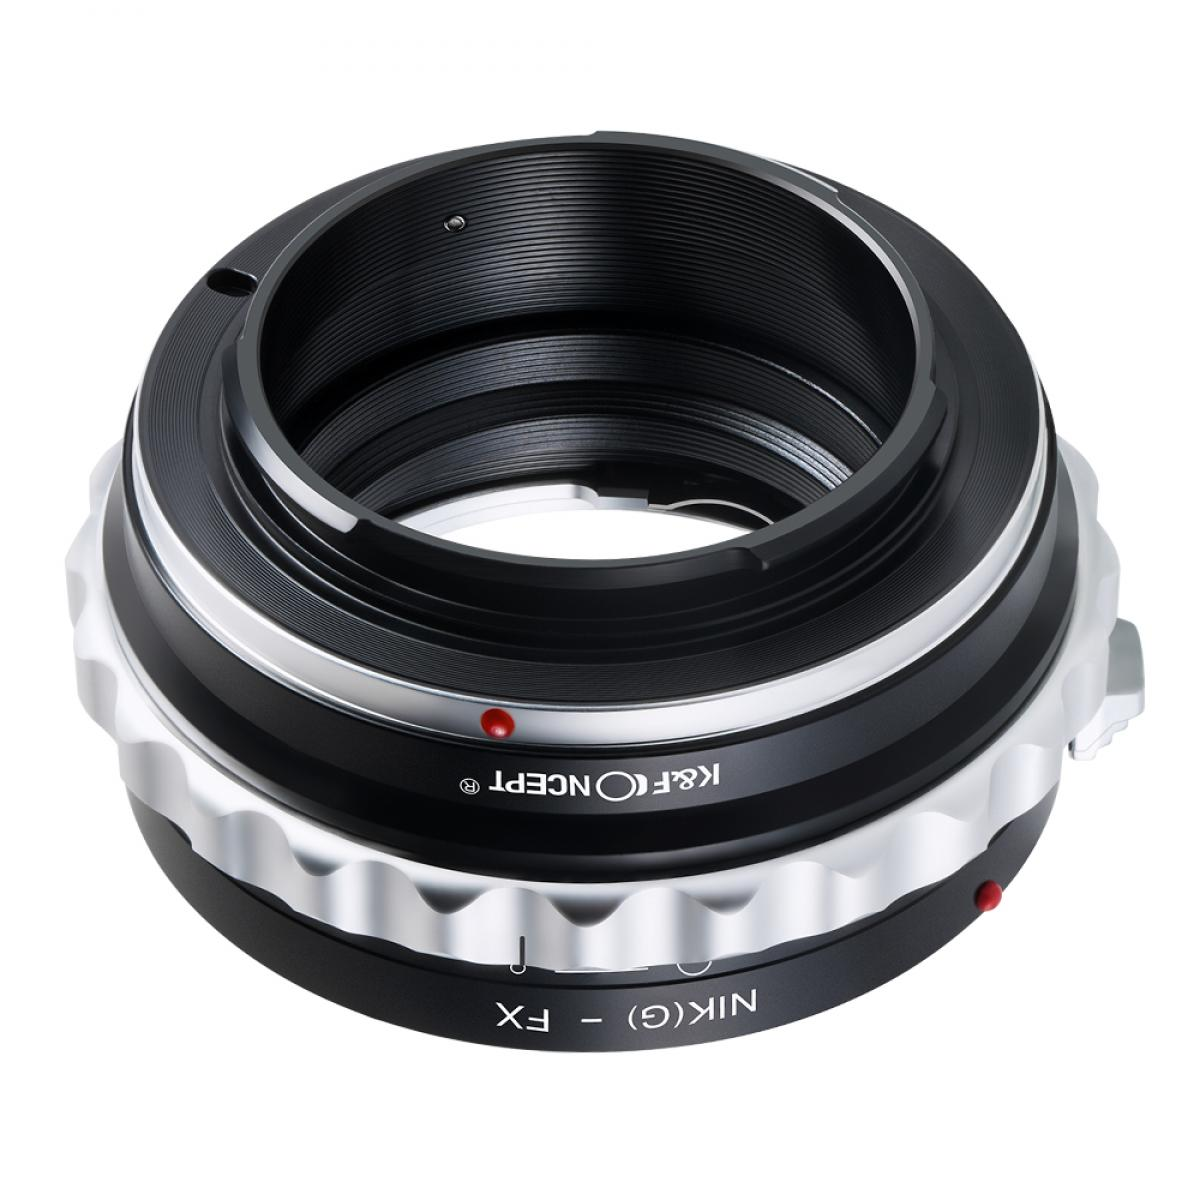 K&F M18111 Nikon G/F/AI/AIS/D Lenses to Fuji X Lens Mount Adapter